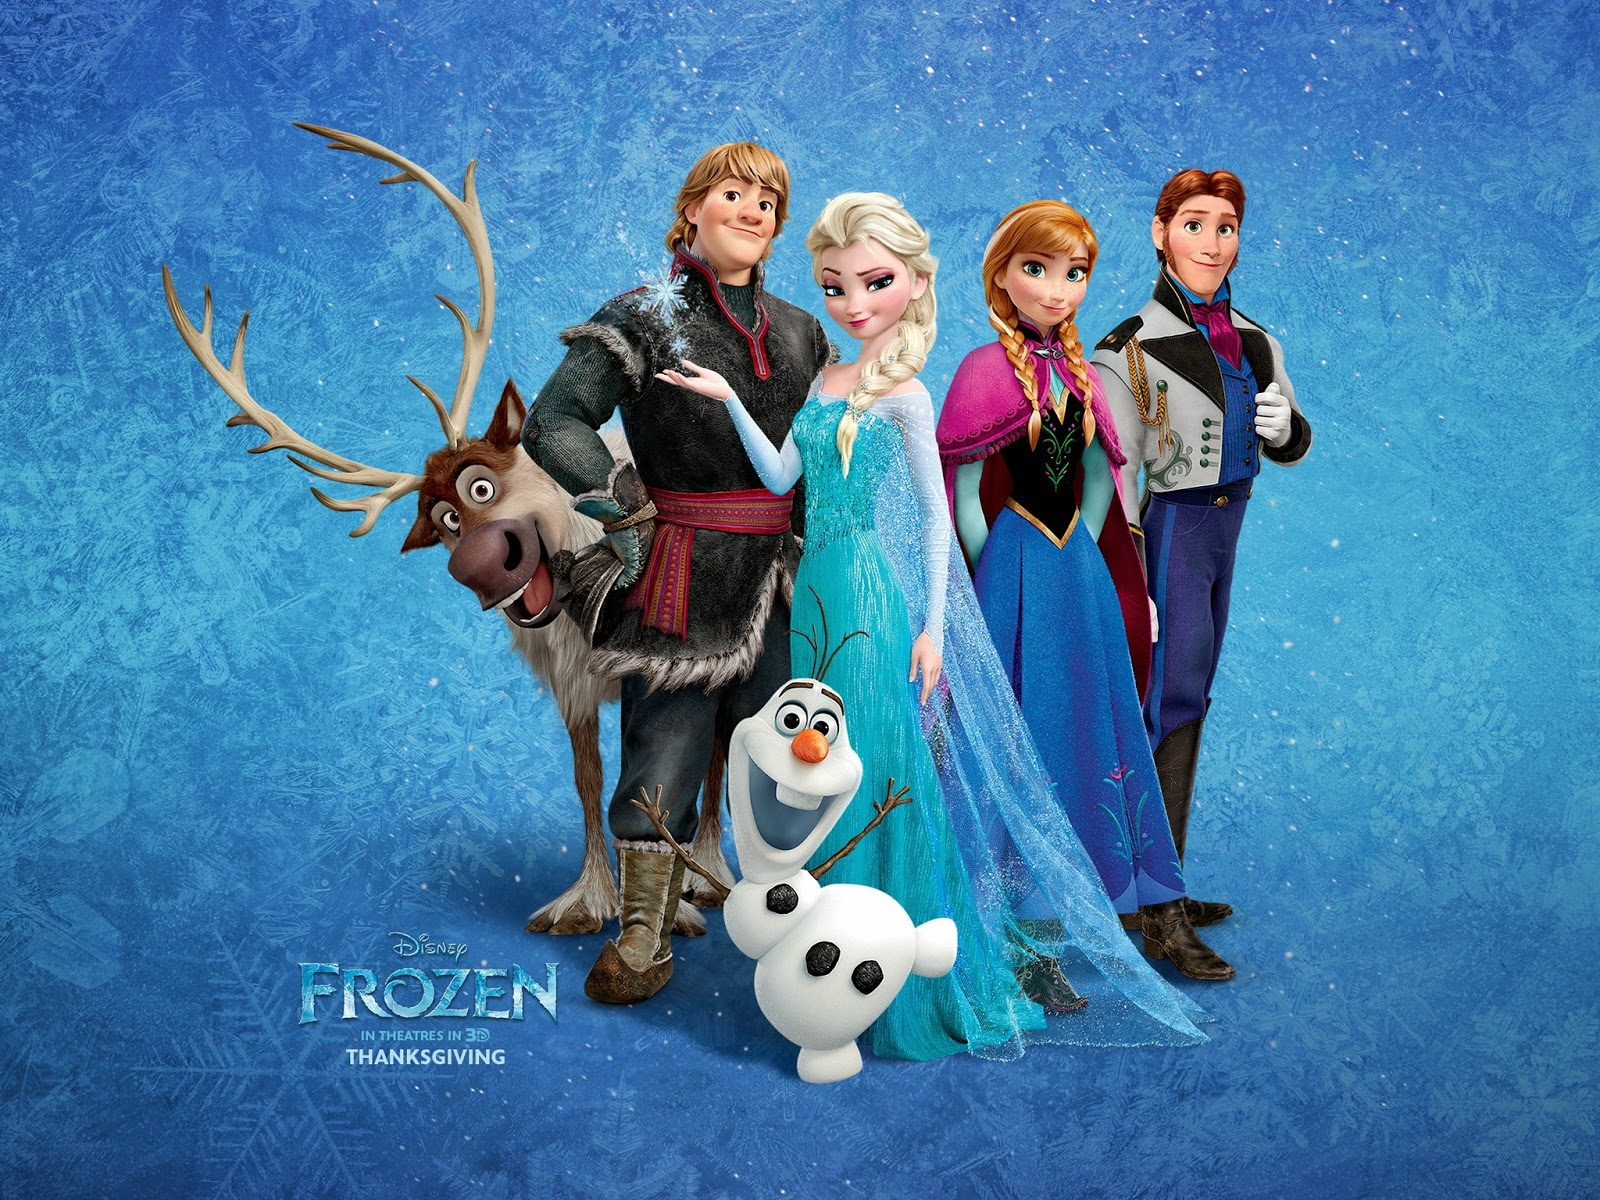 2013 Frozen Movie Watch Online ALL NEW MESS 2013 Frozen Movie Watch Online Free 1600x1200 Movie-index.com